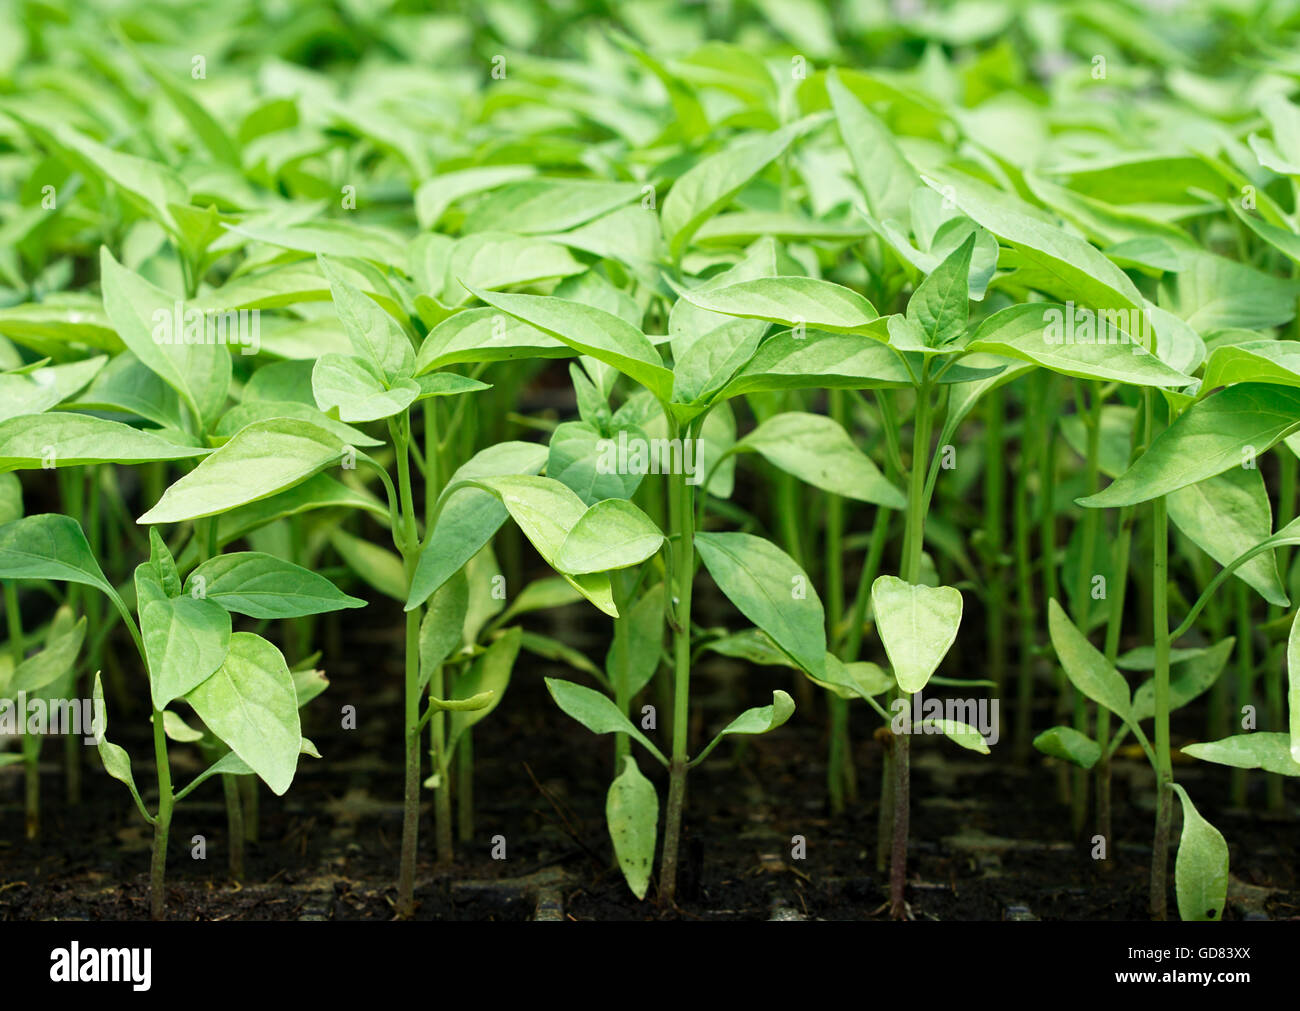 chili seedling in tray ready to transplant in the field - Stock Image